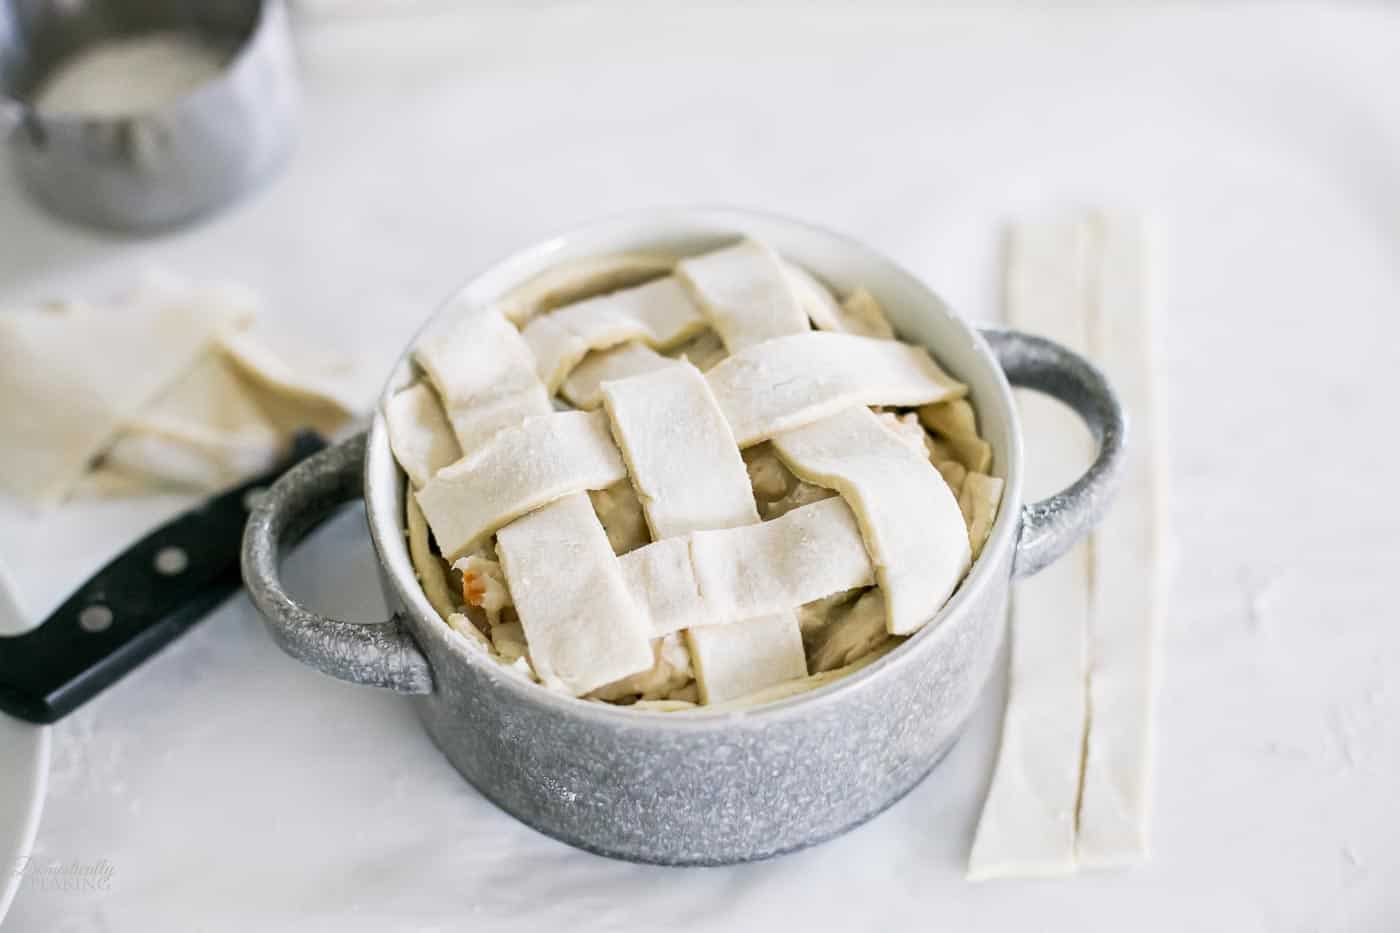 Puff pastry lattice topping on a homemade chicken pot pie.